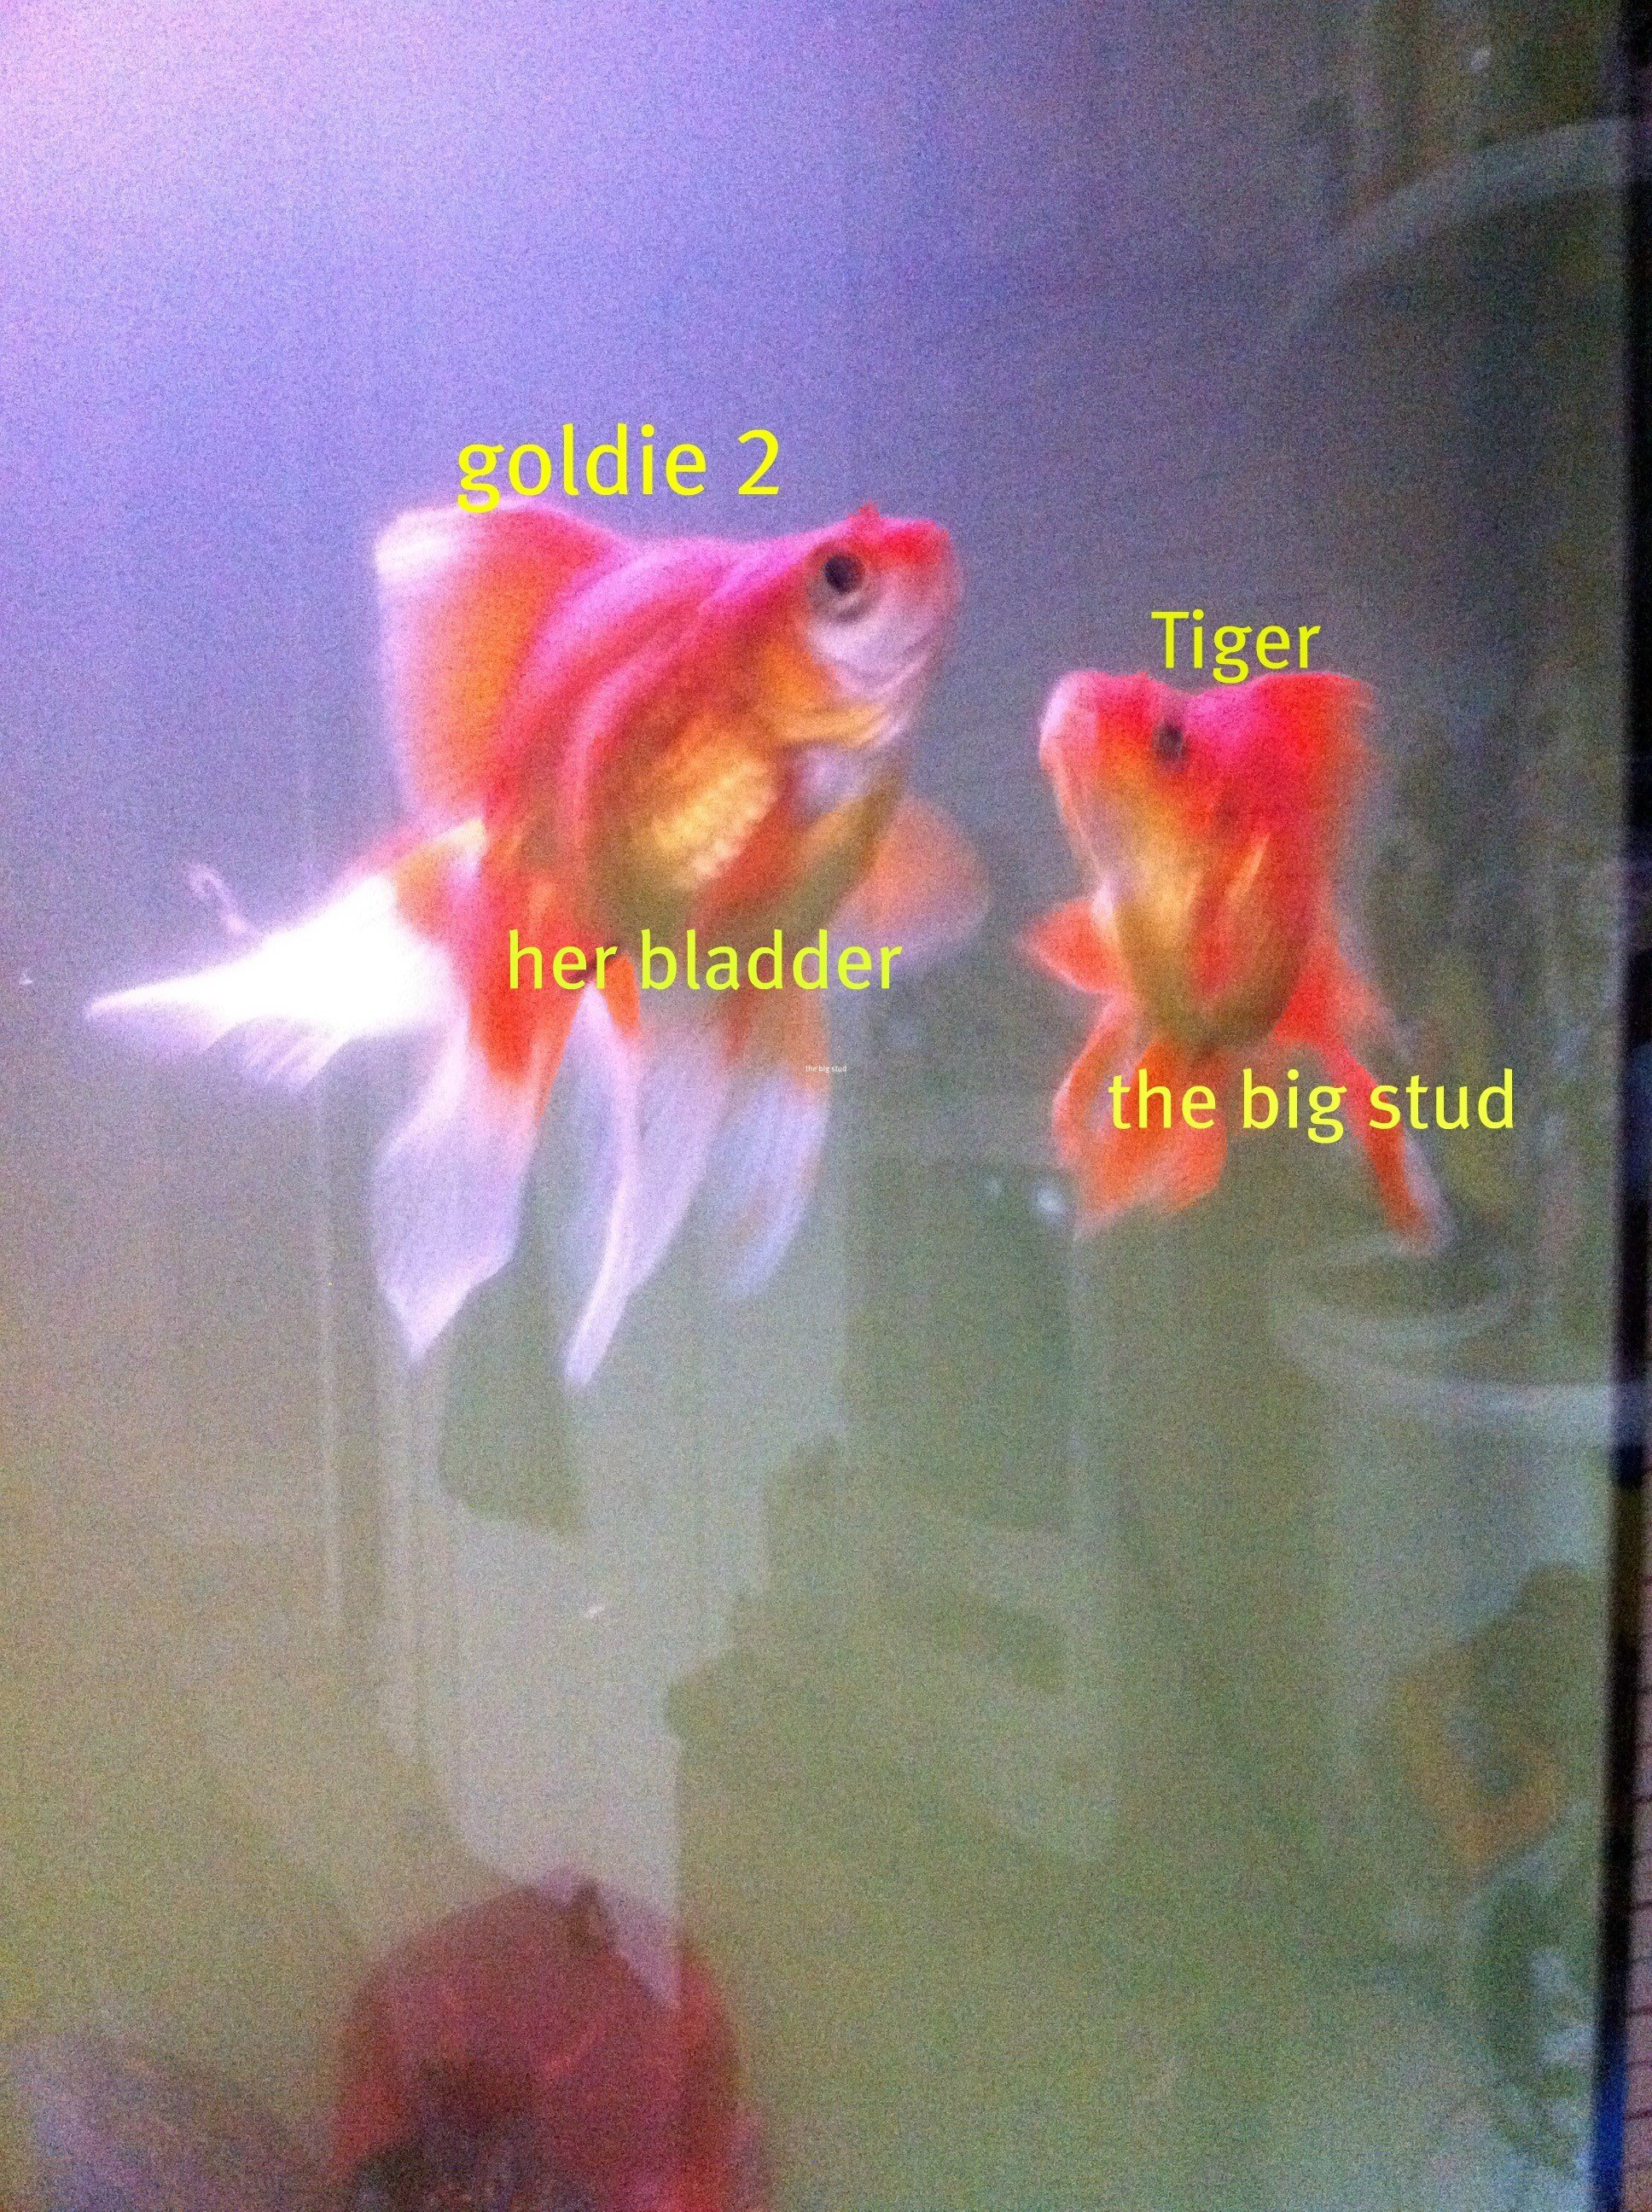 Do Goldfish Poop And Pee Lets Find Out Tastemaker Collective Media